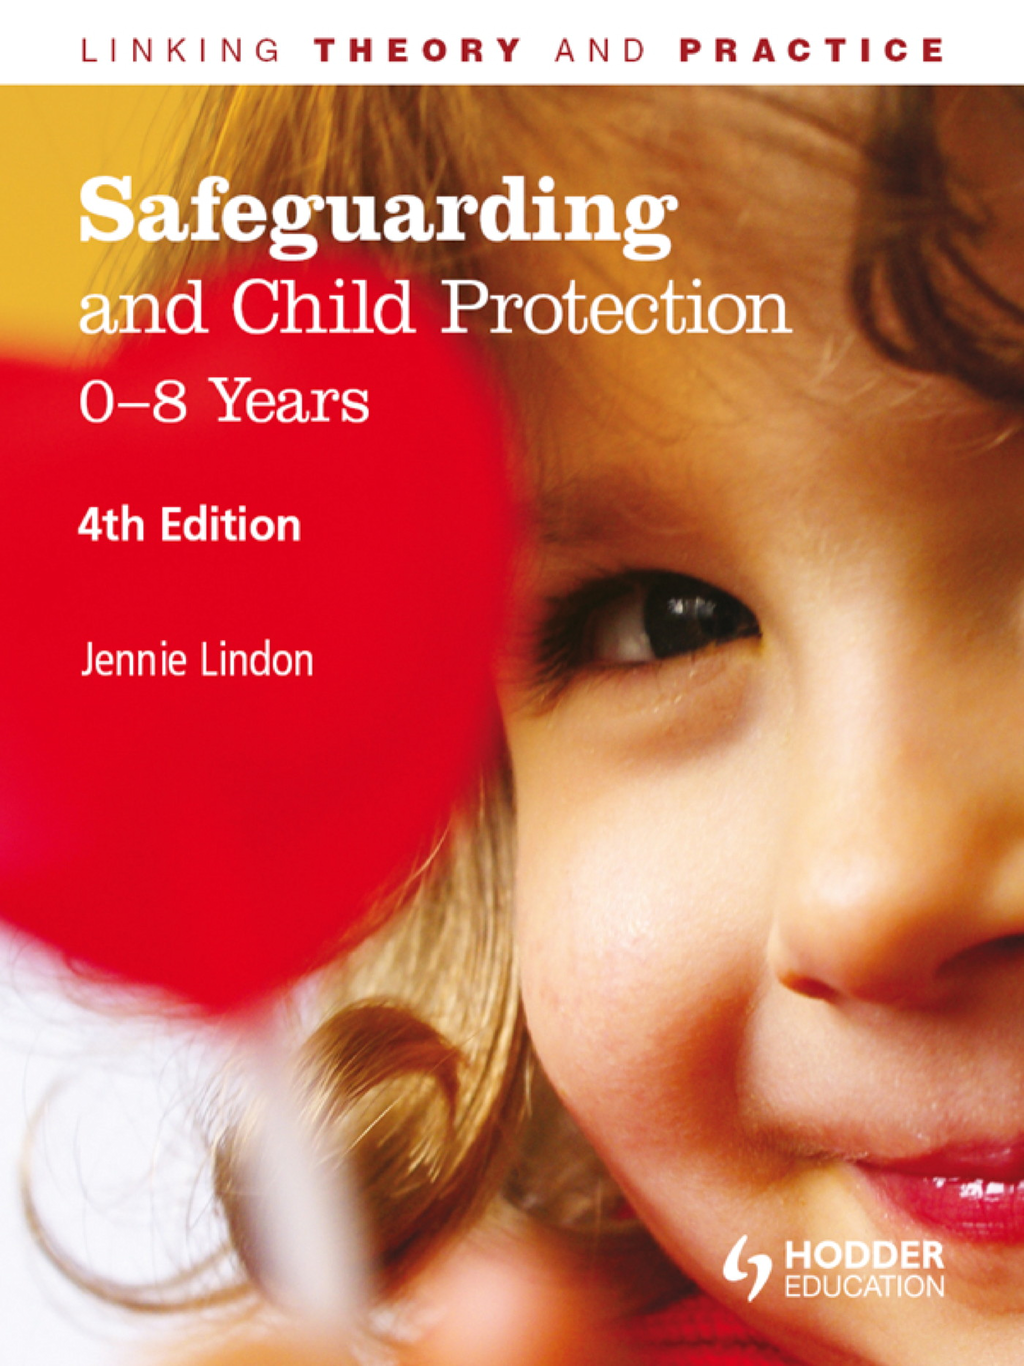 Safeguarding and Child Protection: 0-8 Years,  4th Edition